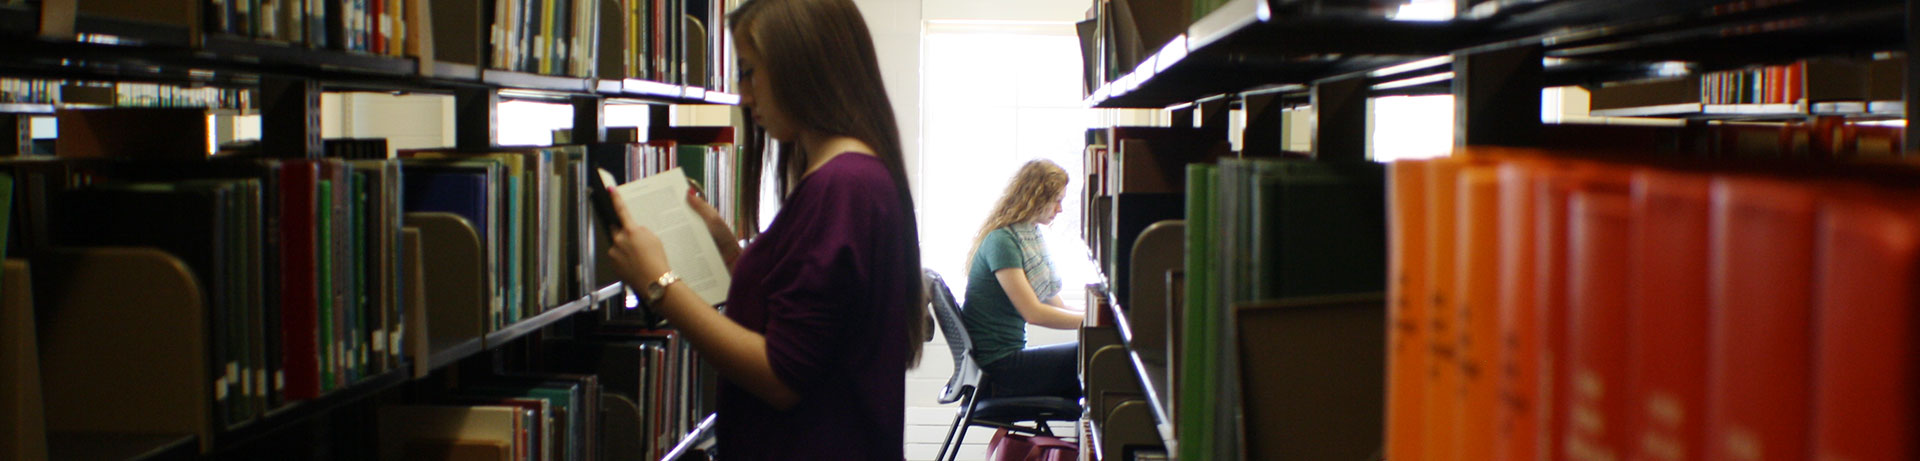 Students spend time in Libraries stacks